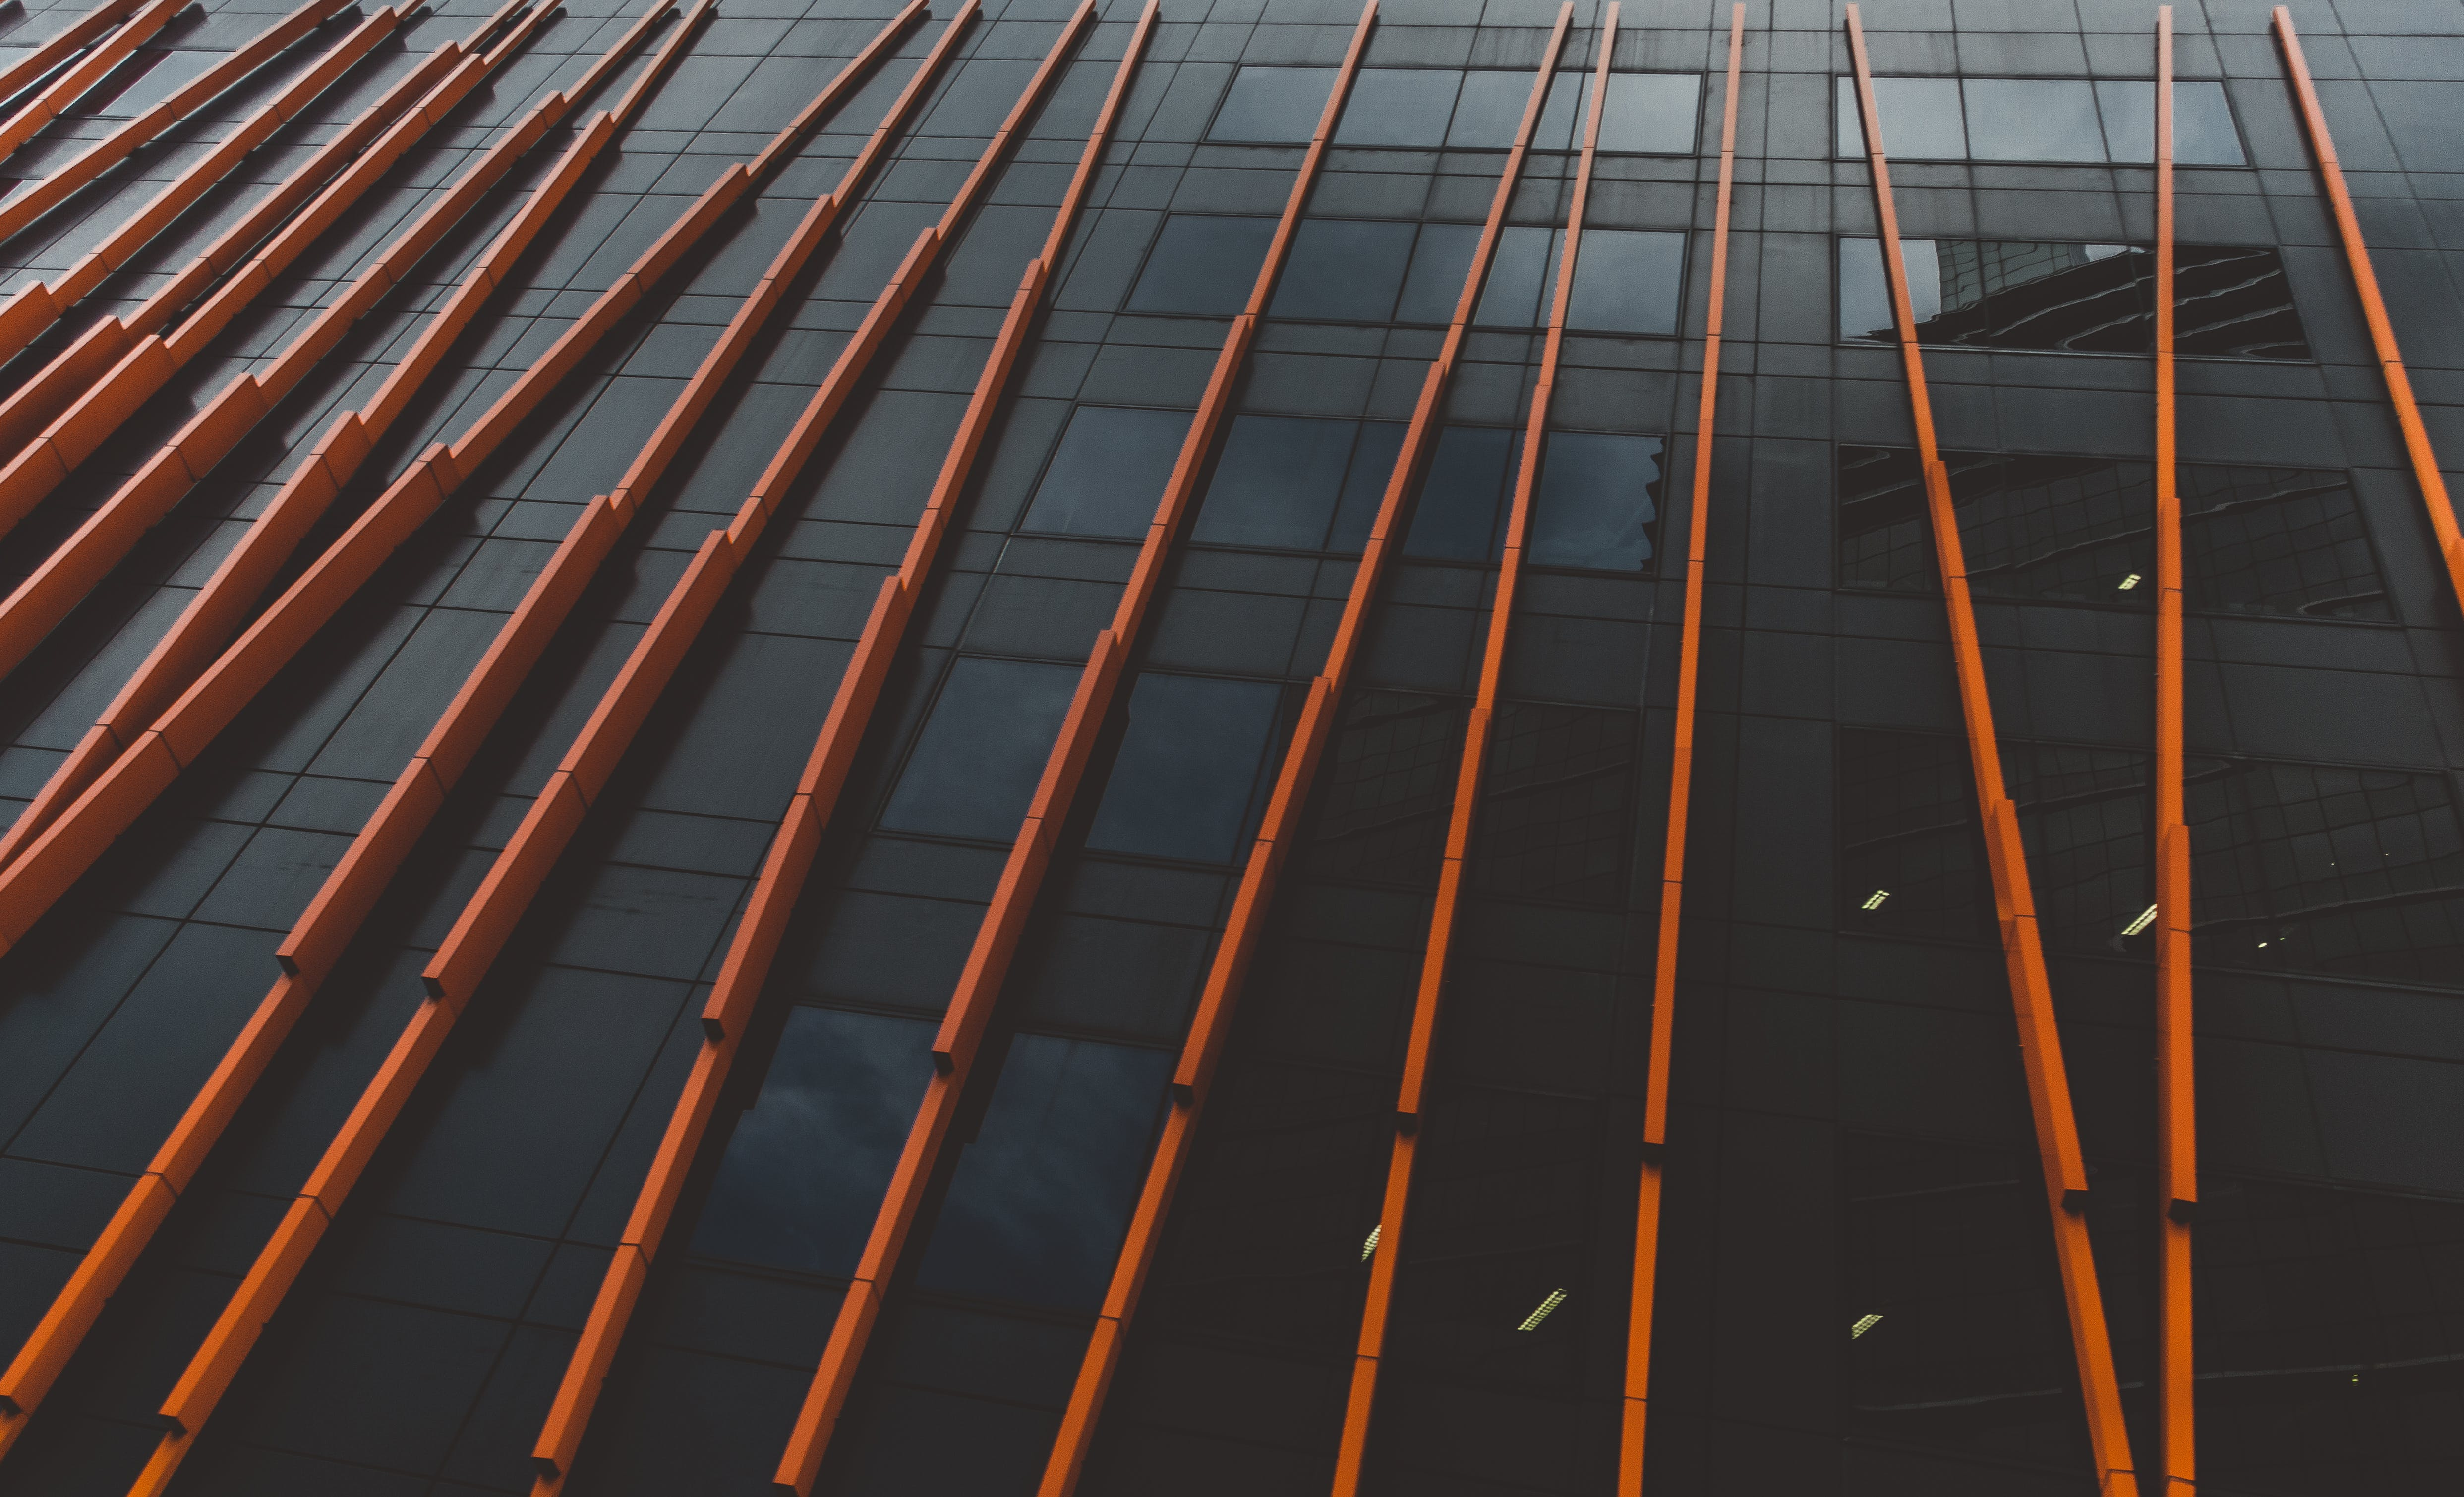 Low-angle Photography of Glass Building